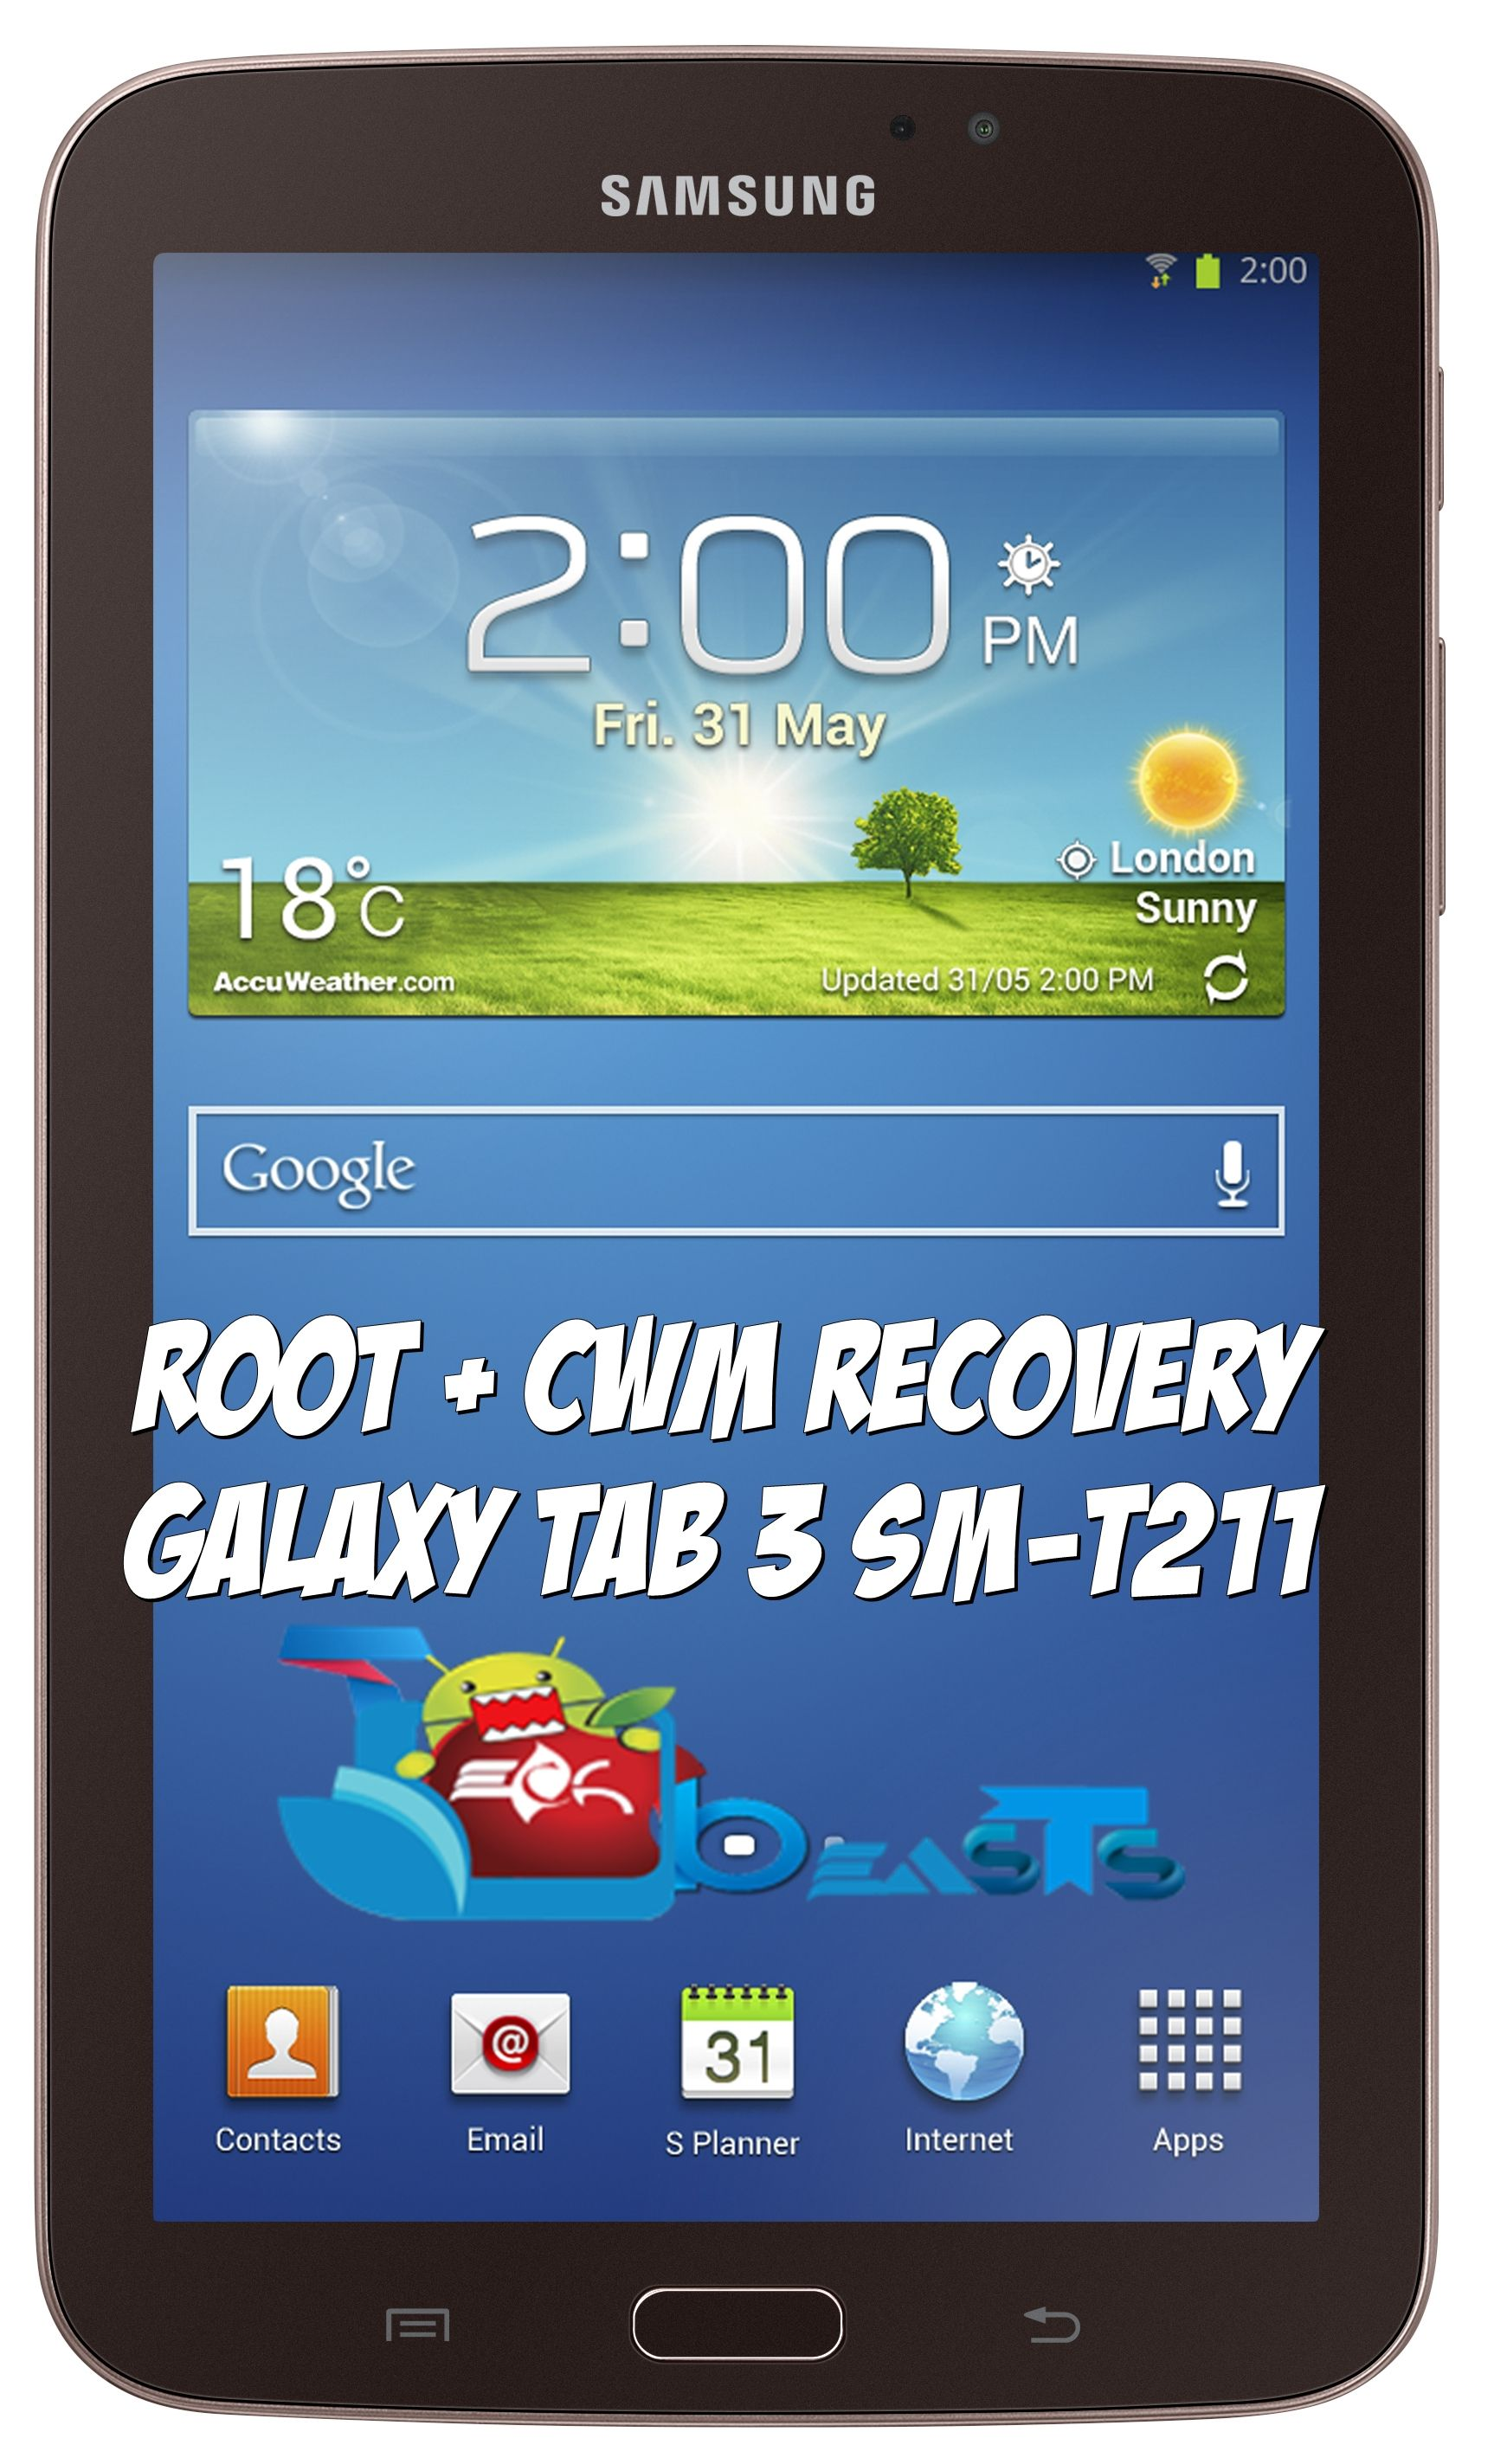 How to Root and Install CWM Recovery on Samsung Galaxy Tab 3